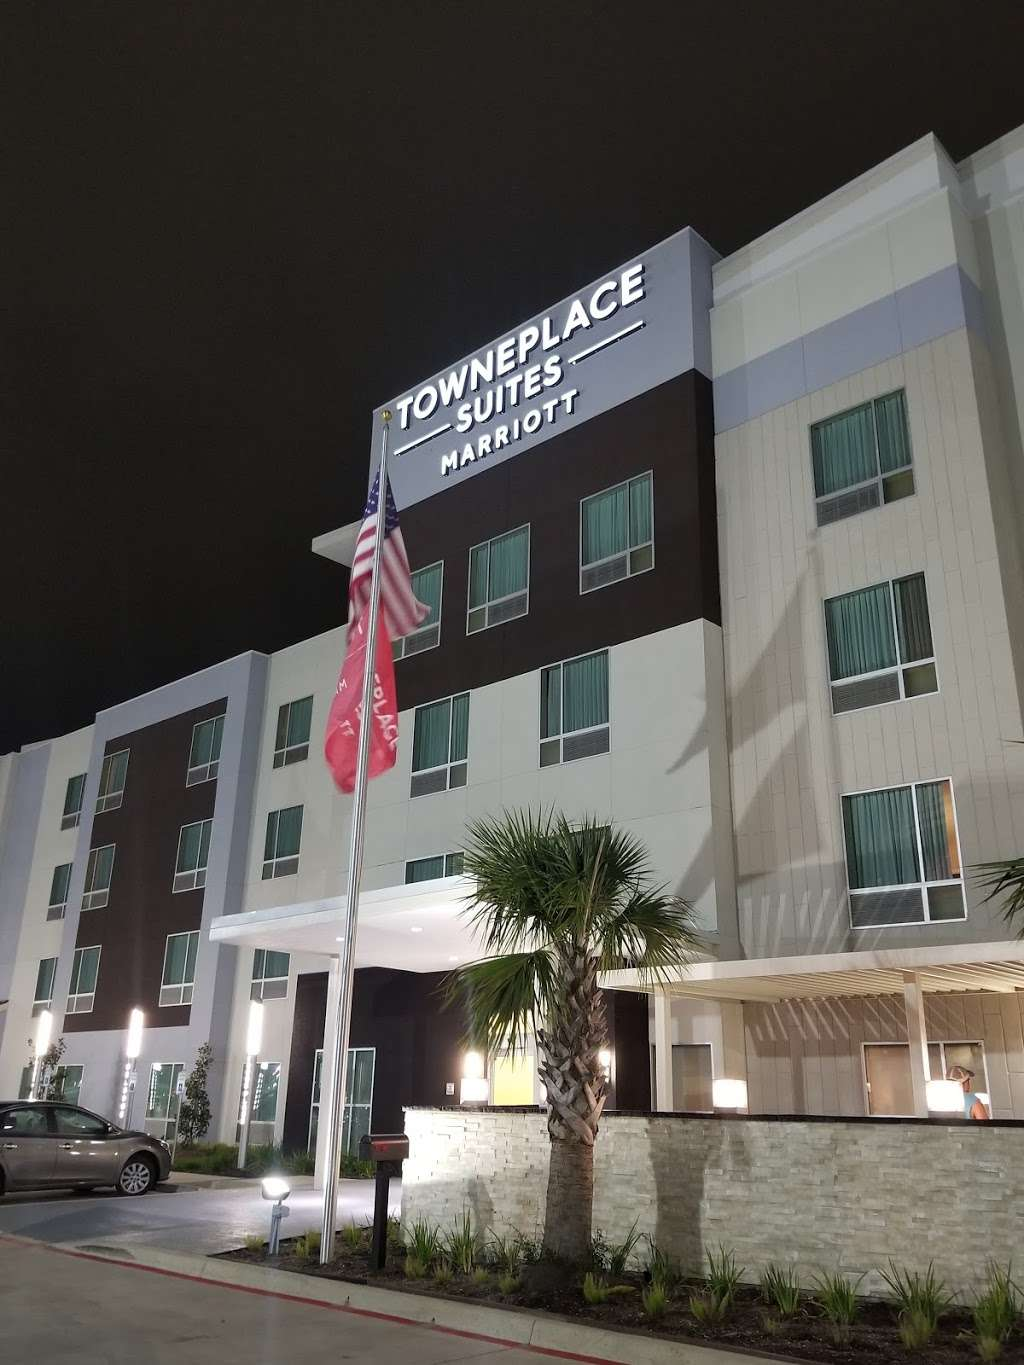 TownePlace Suites by Marriott Houston Baytown - lodging  | Photo 1 of 10 | Address: 7238 Garth Rd, Baytown, TX 77521, USA | Phone: (281) 421-0020